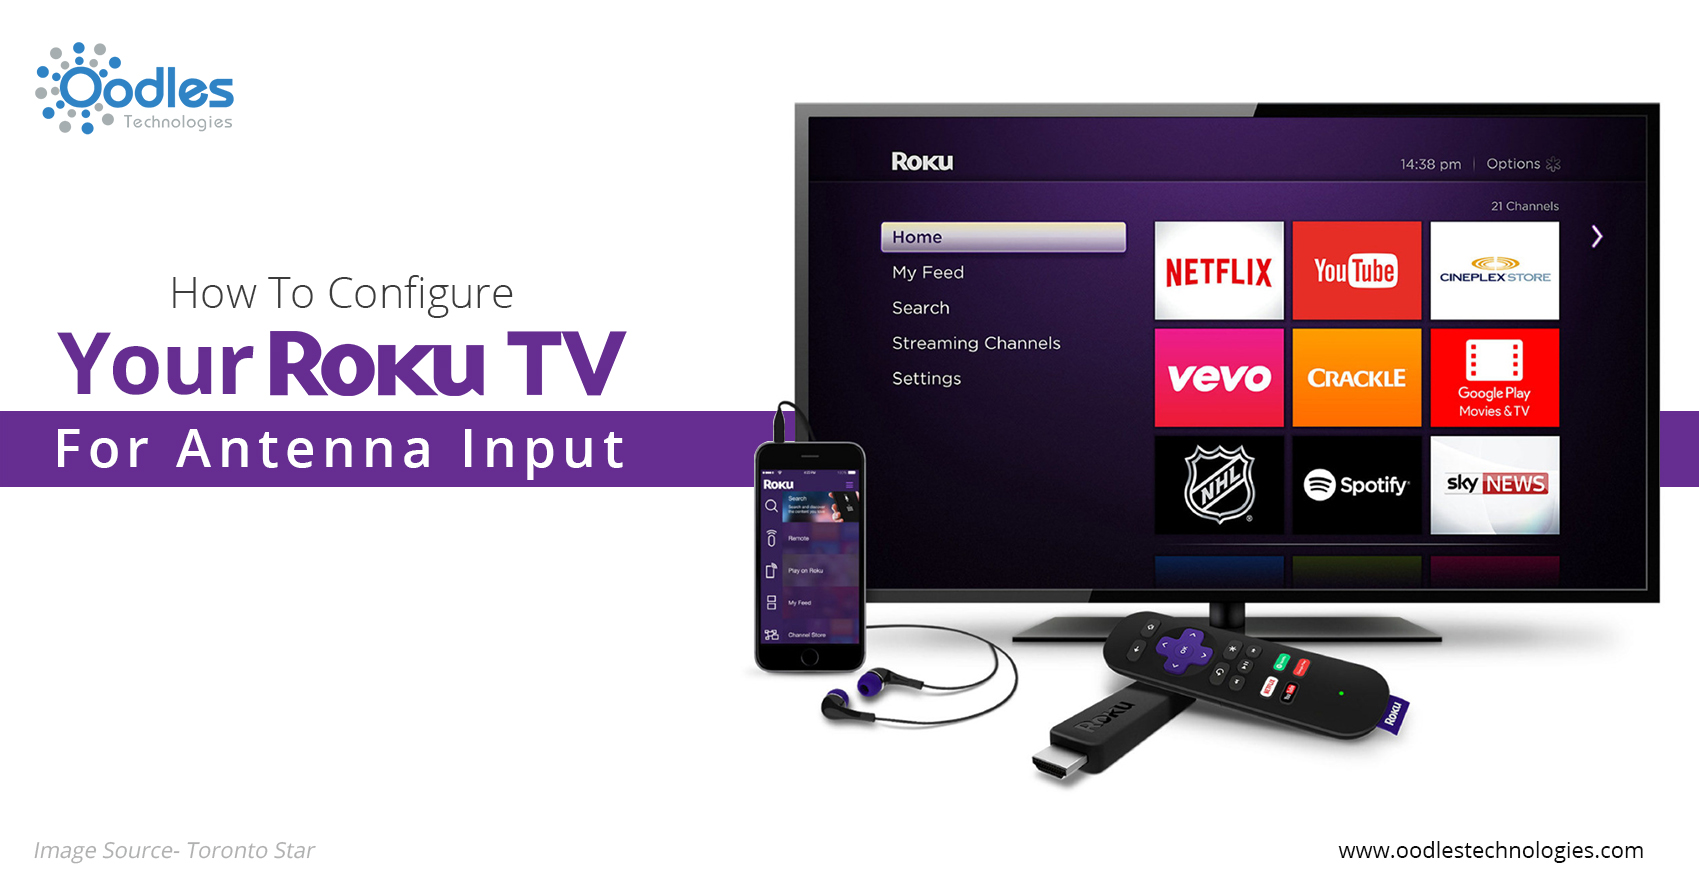 How To Configure Your Roku TV For Antenna Input